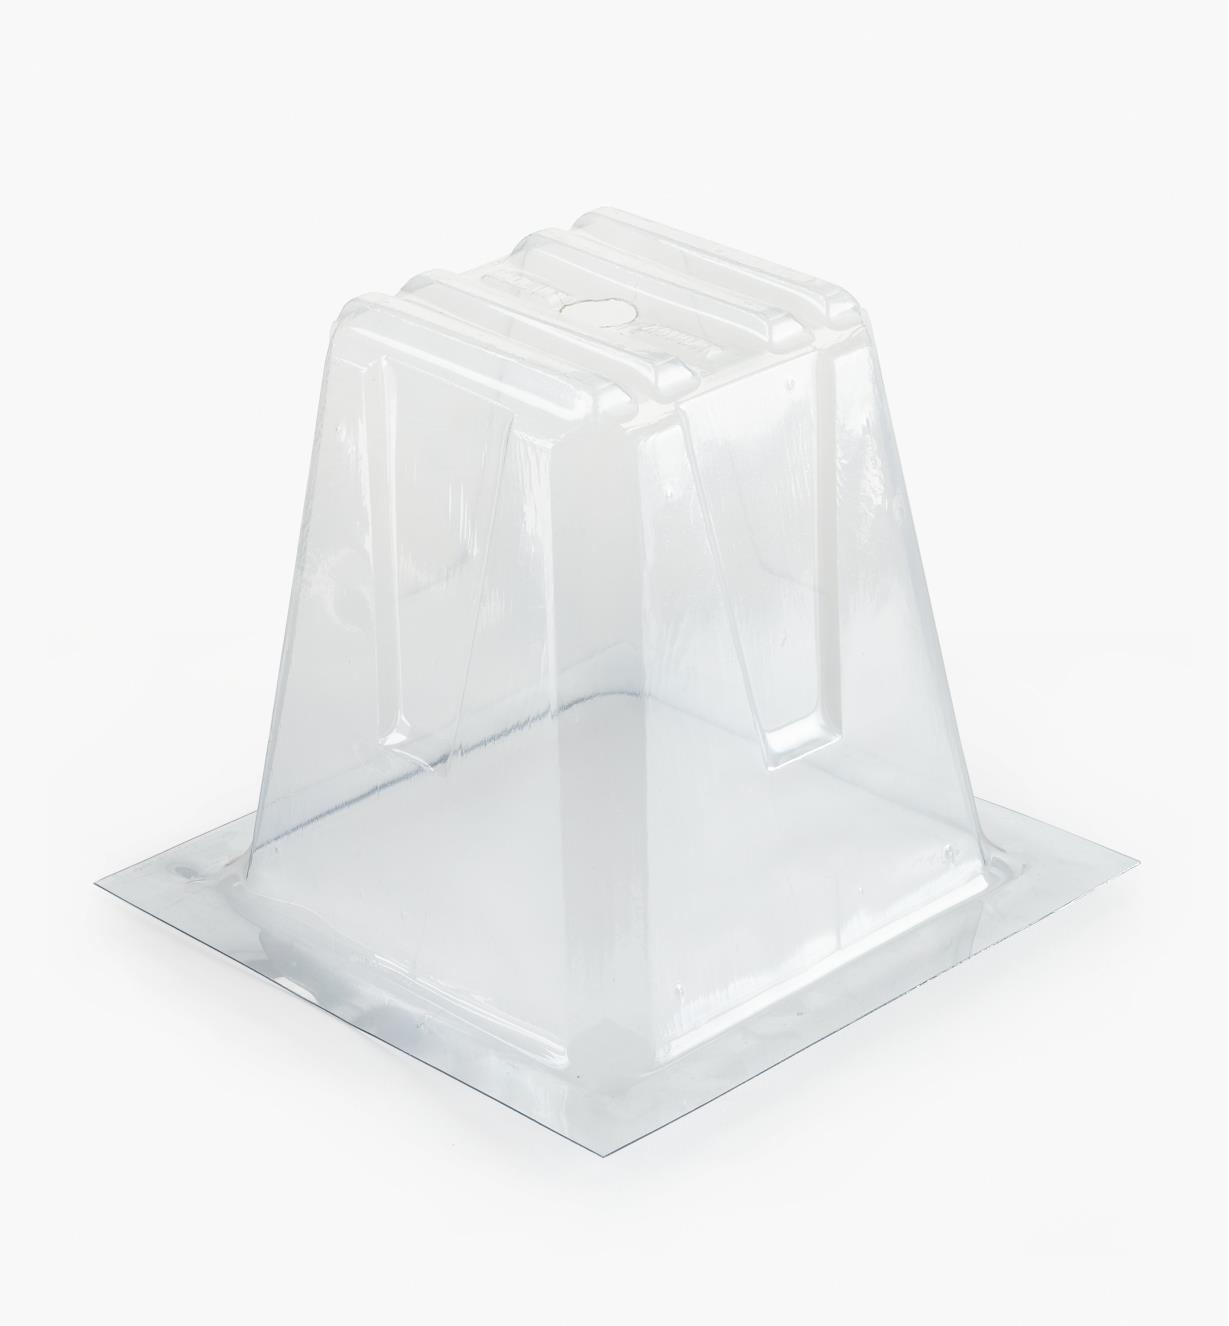 ED903 - Garden Cloches, pkg. of 10